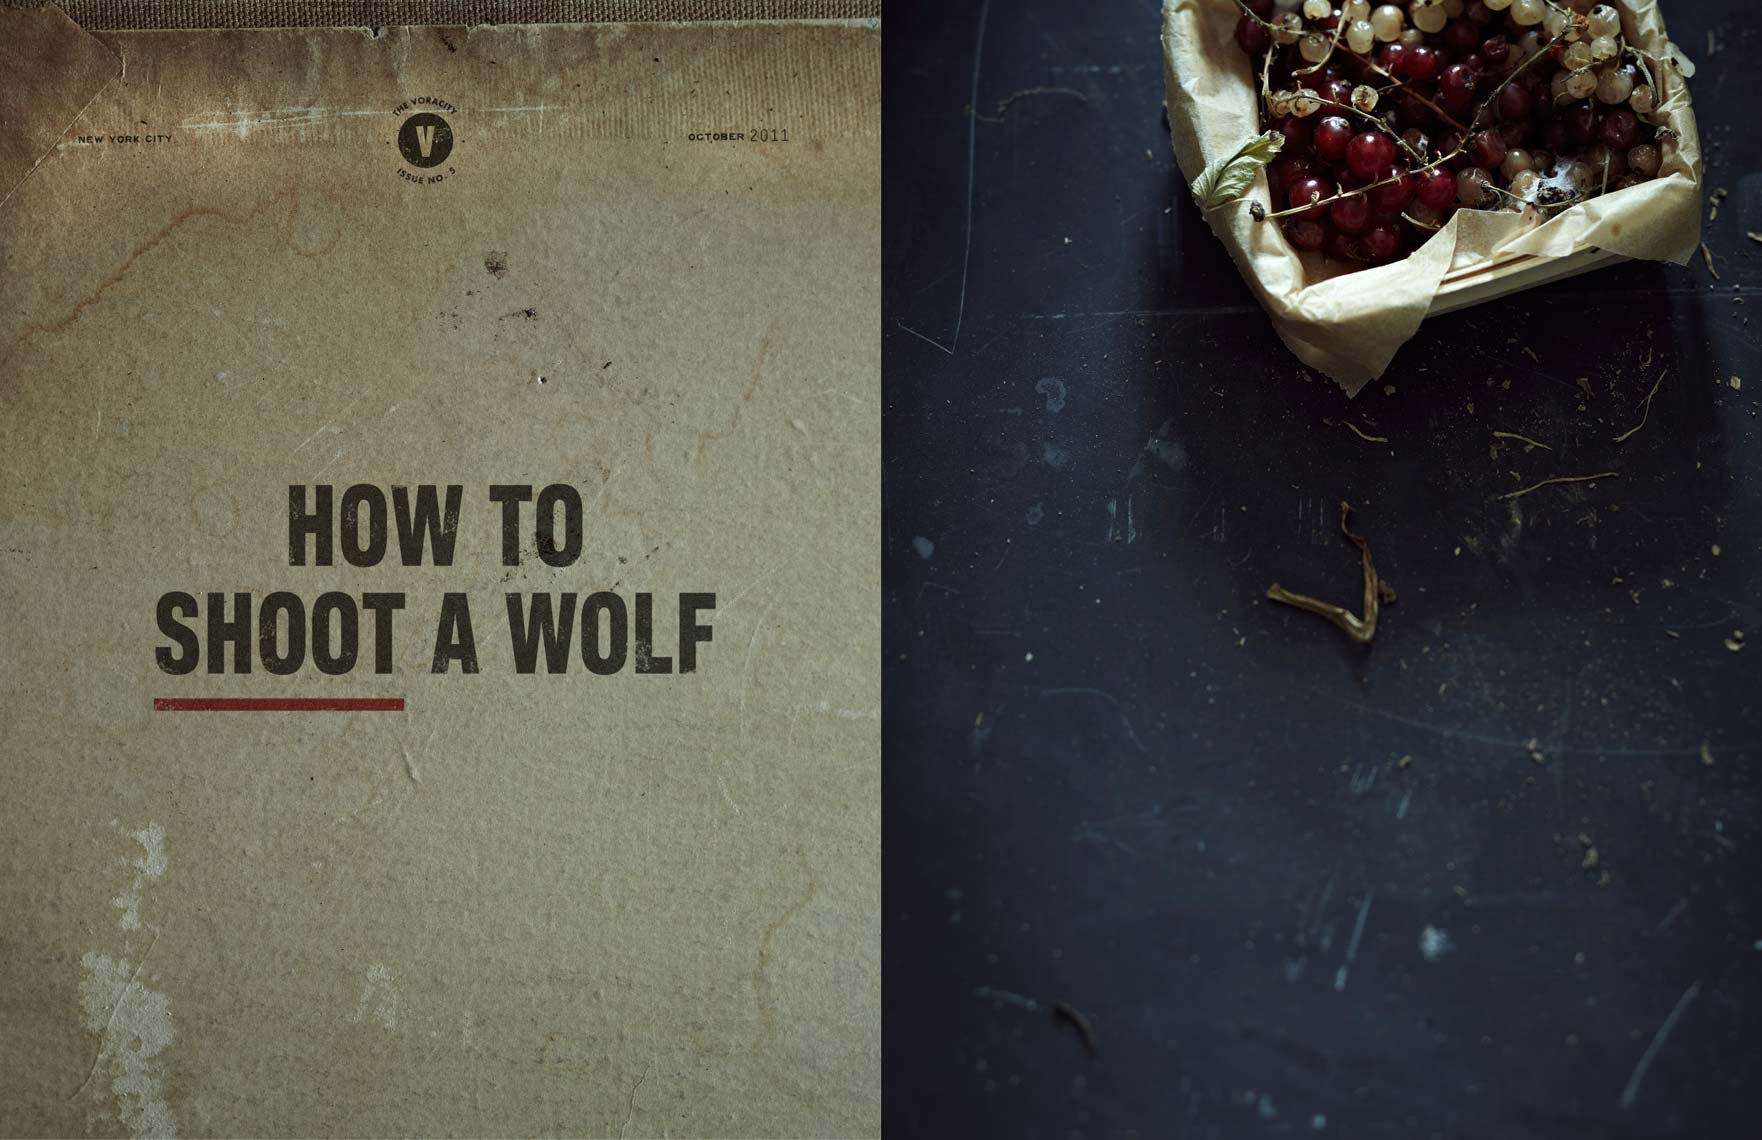 HOW TO SHOOT A WOLF - The Voracity by Anna Williams